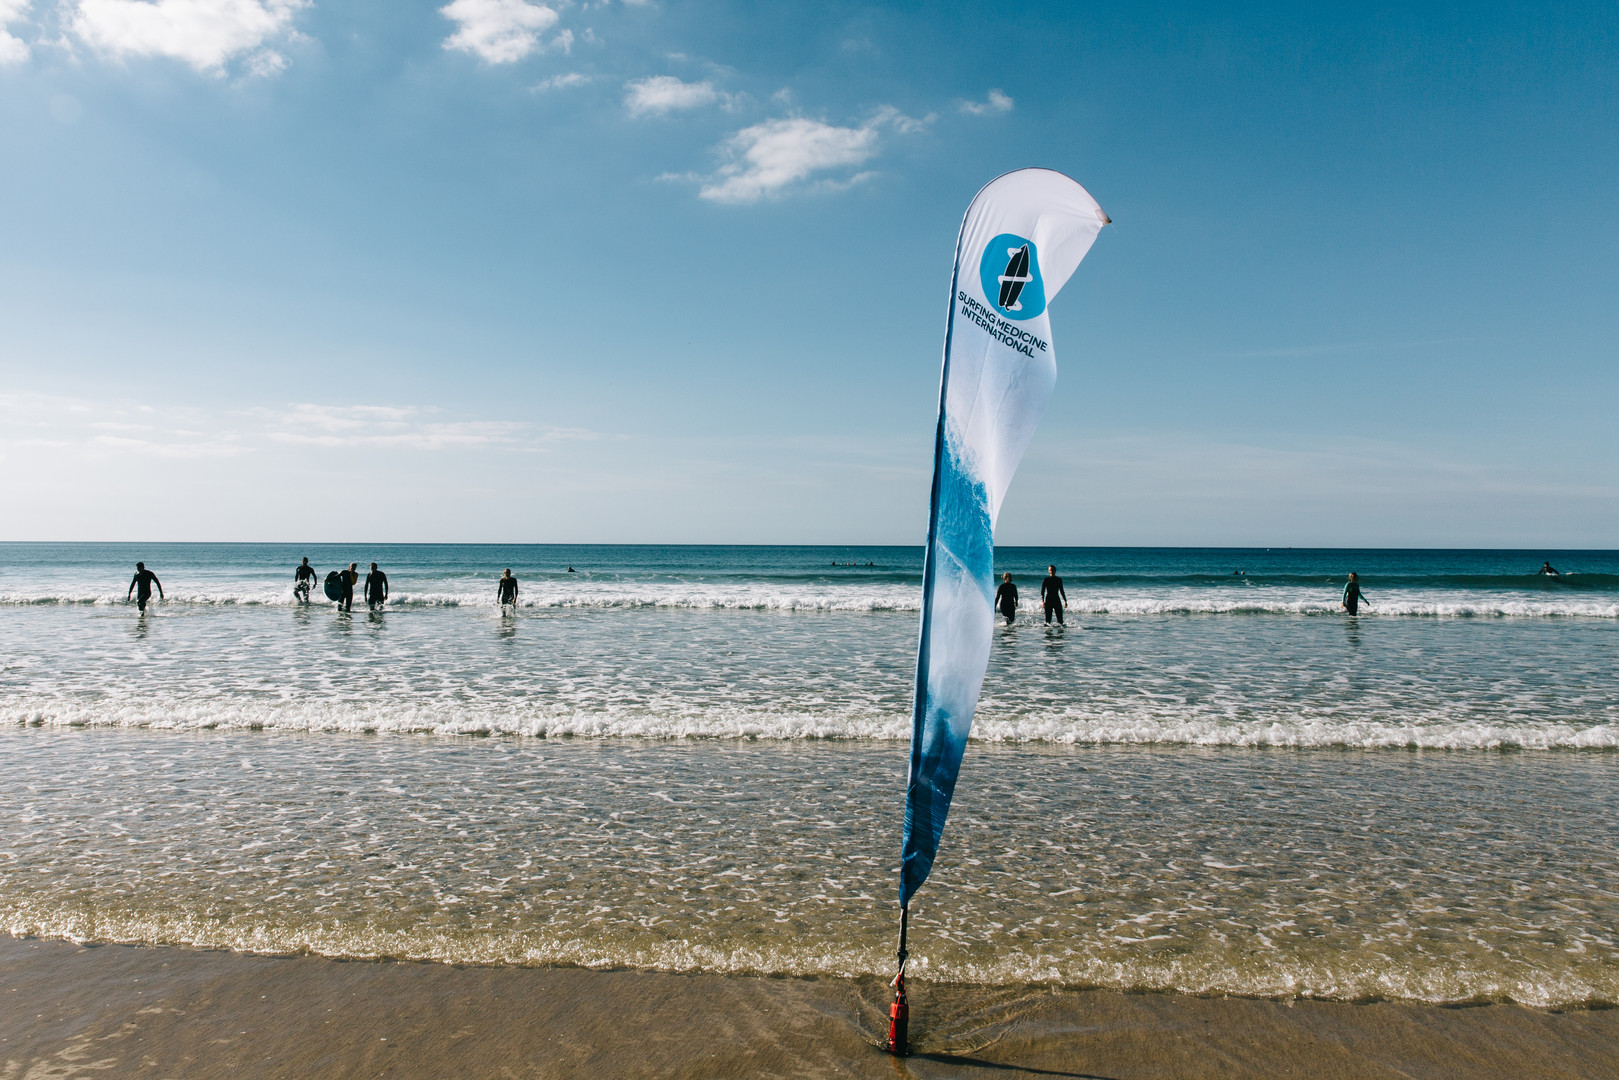 Surfing Medicine International